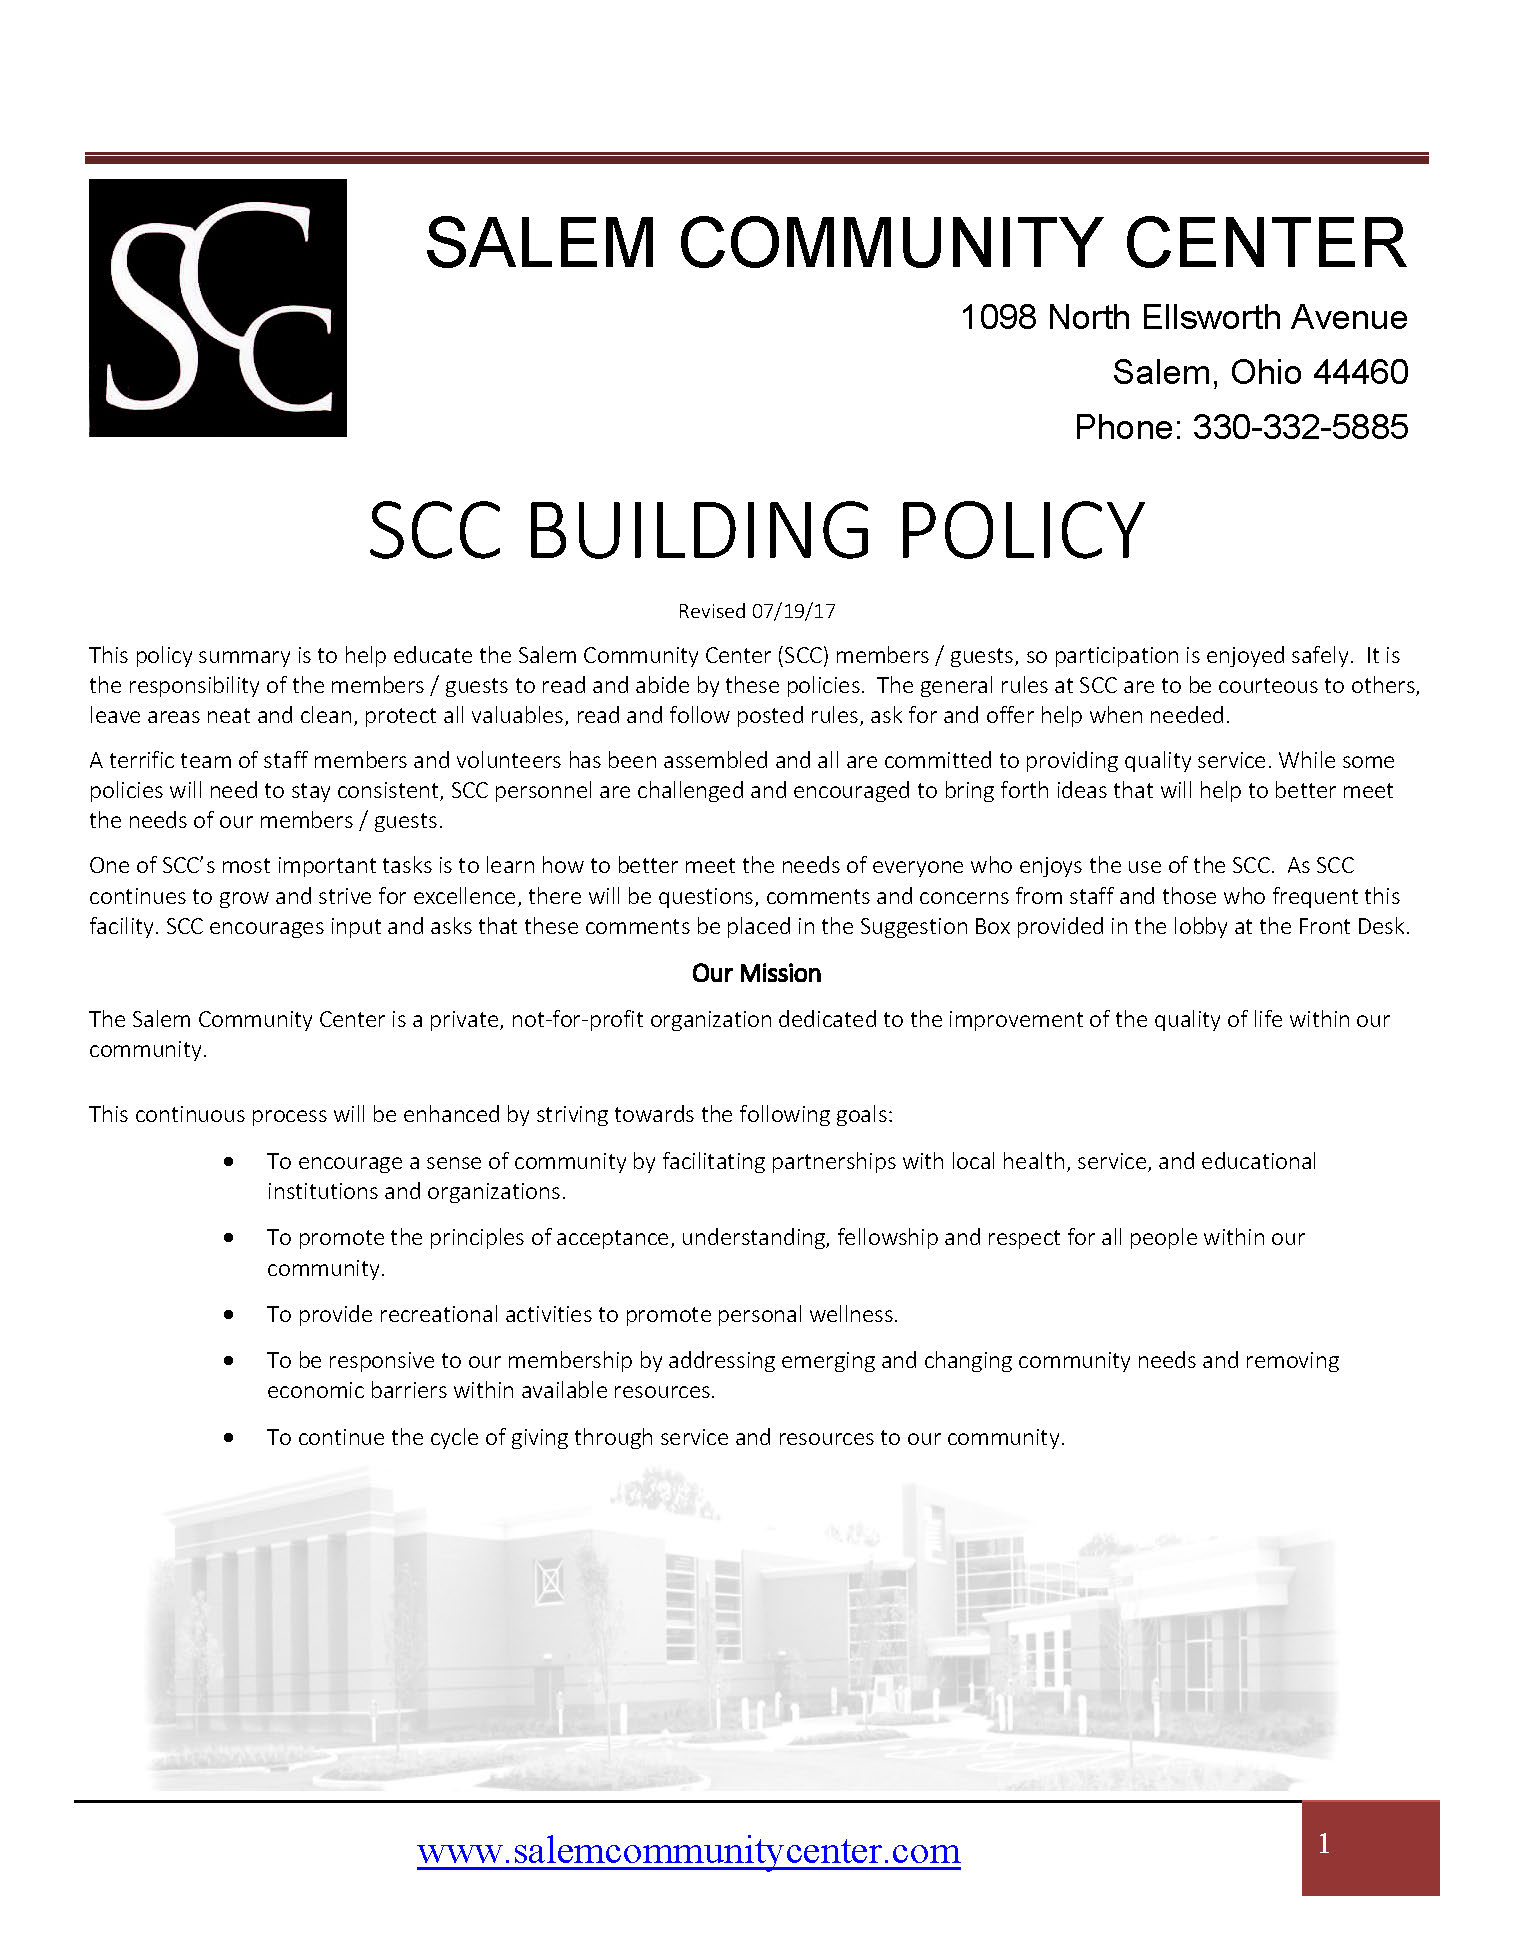 SCC Building Policy Revised 071917 Page 01